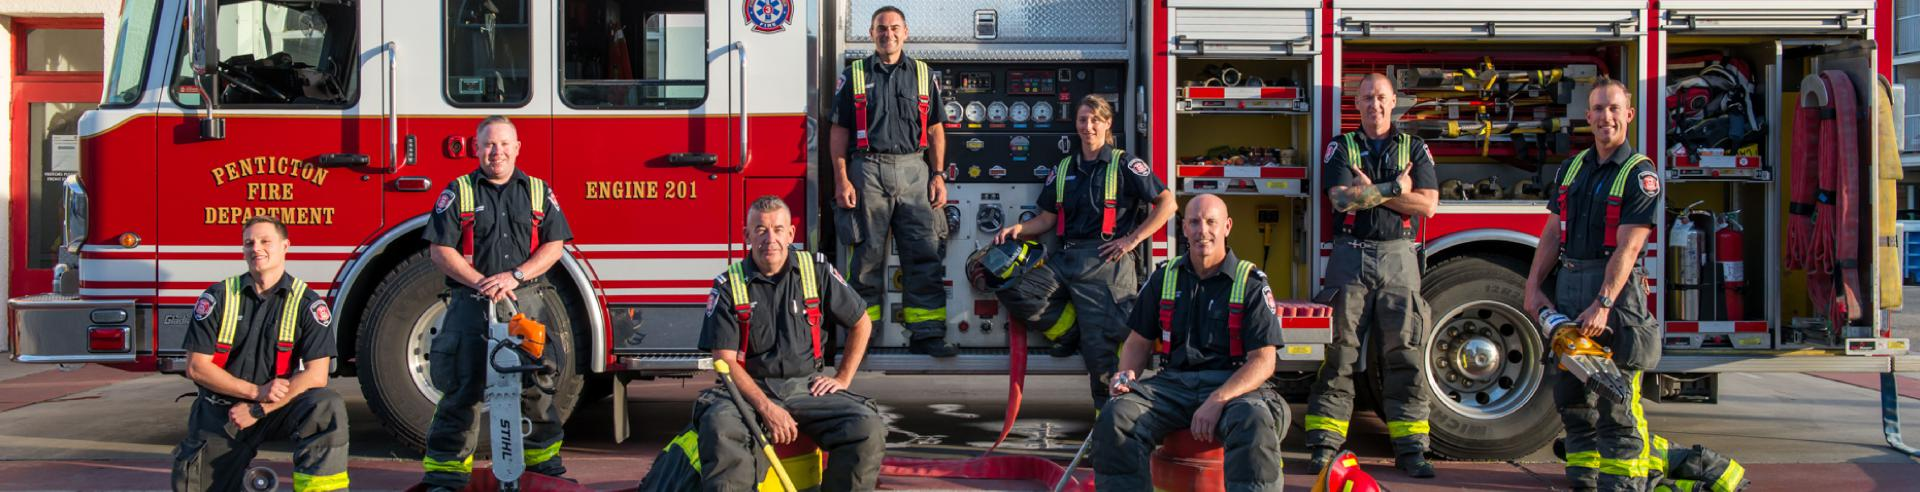 Penticton Fire Department